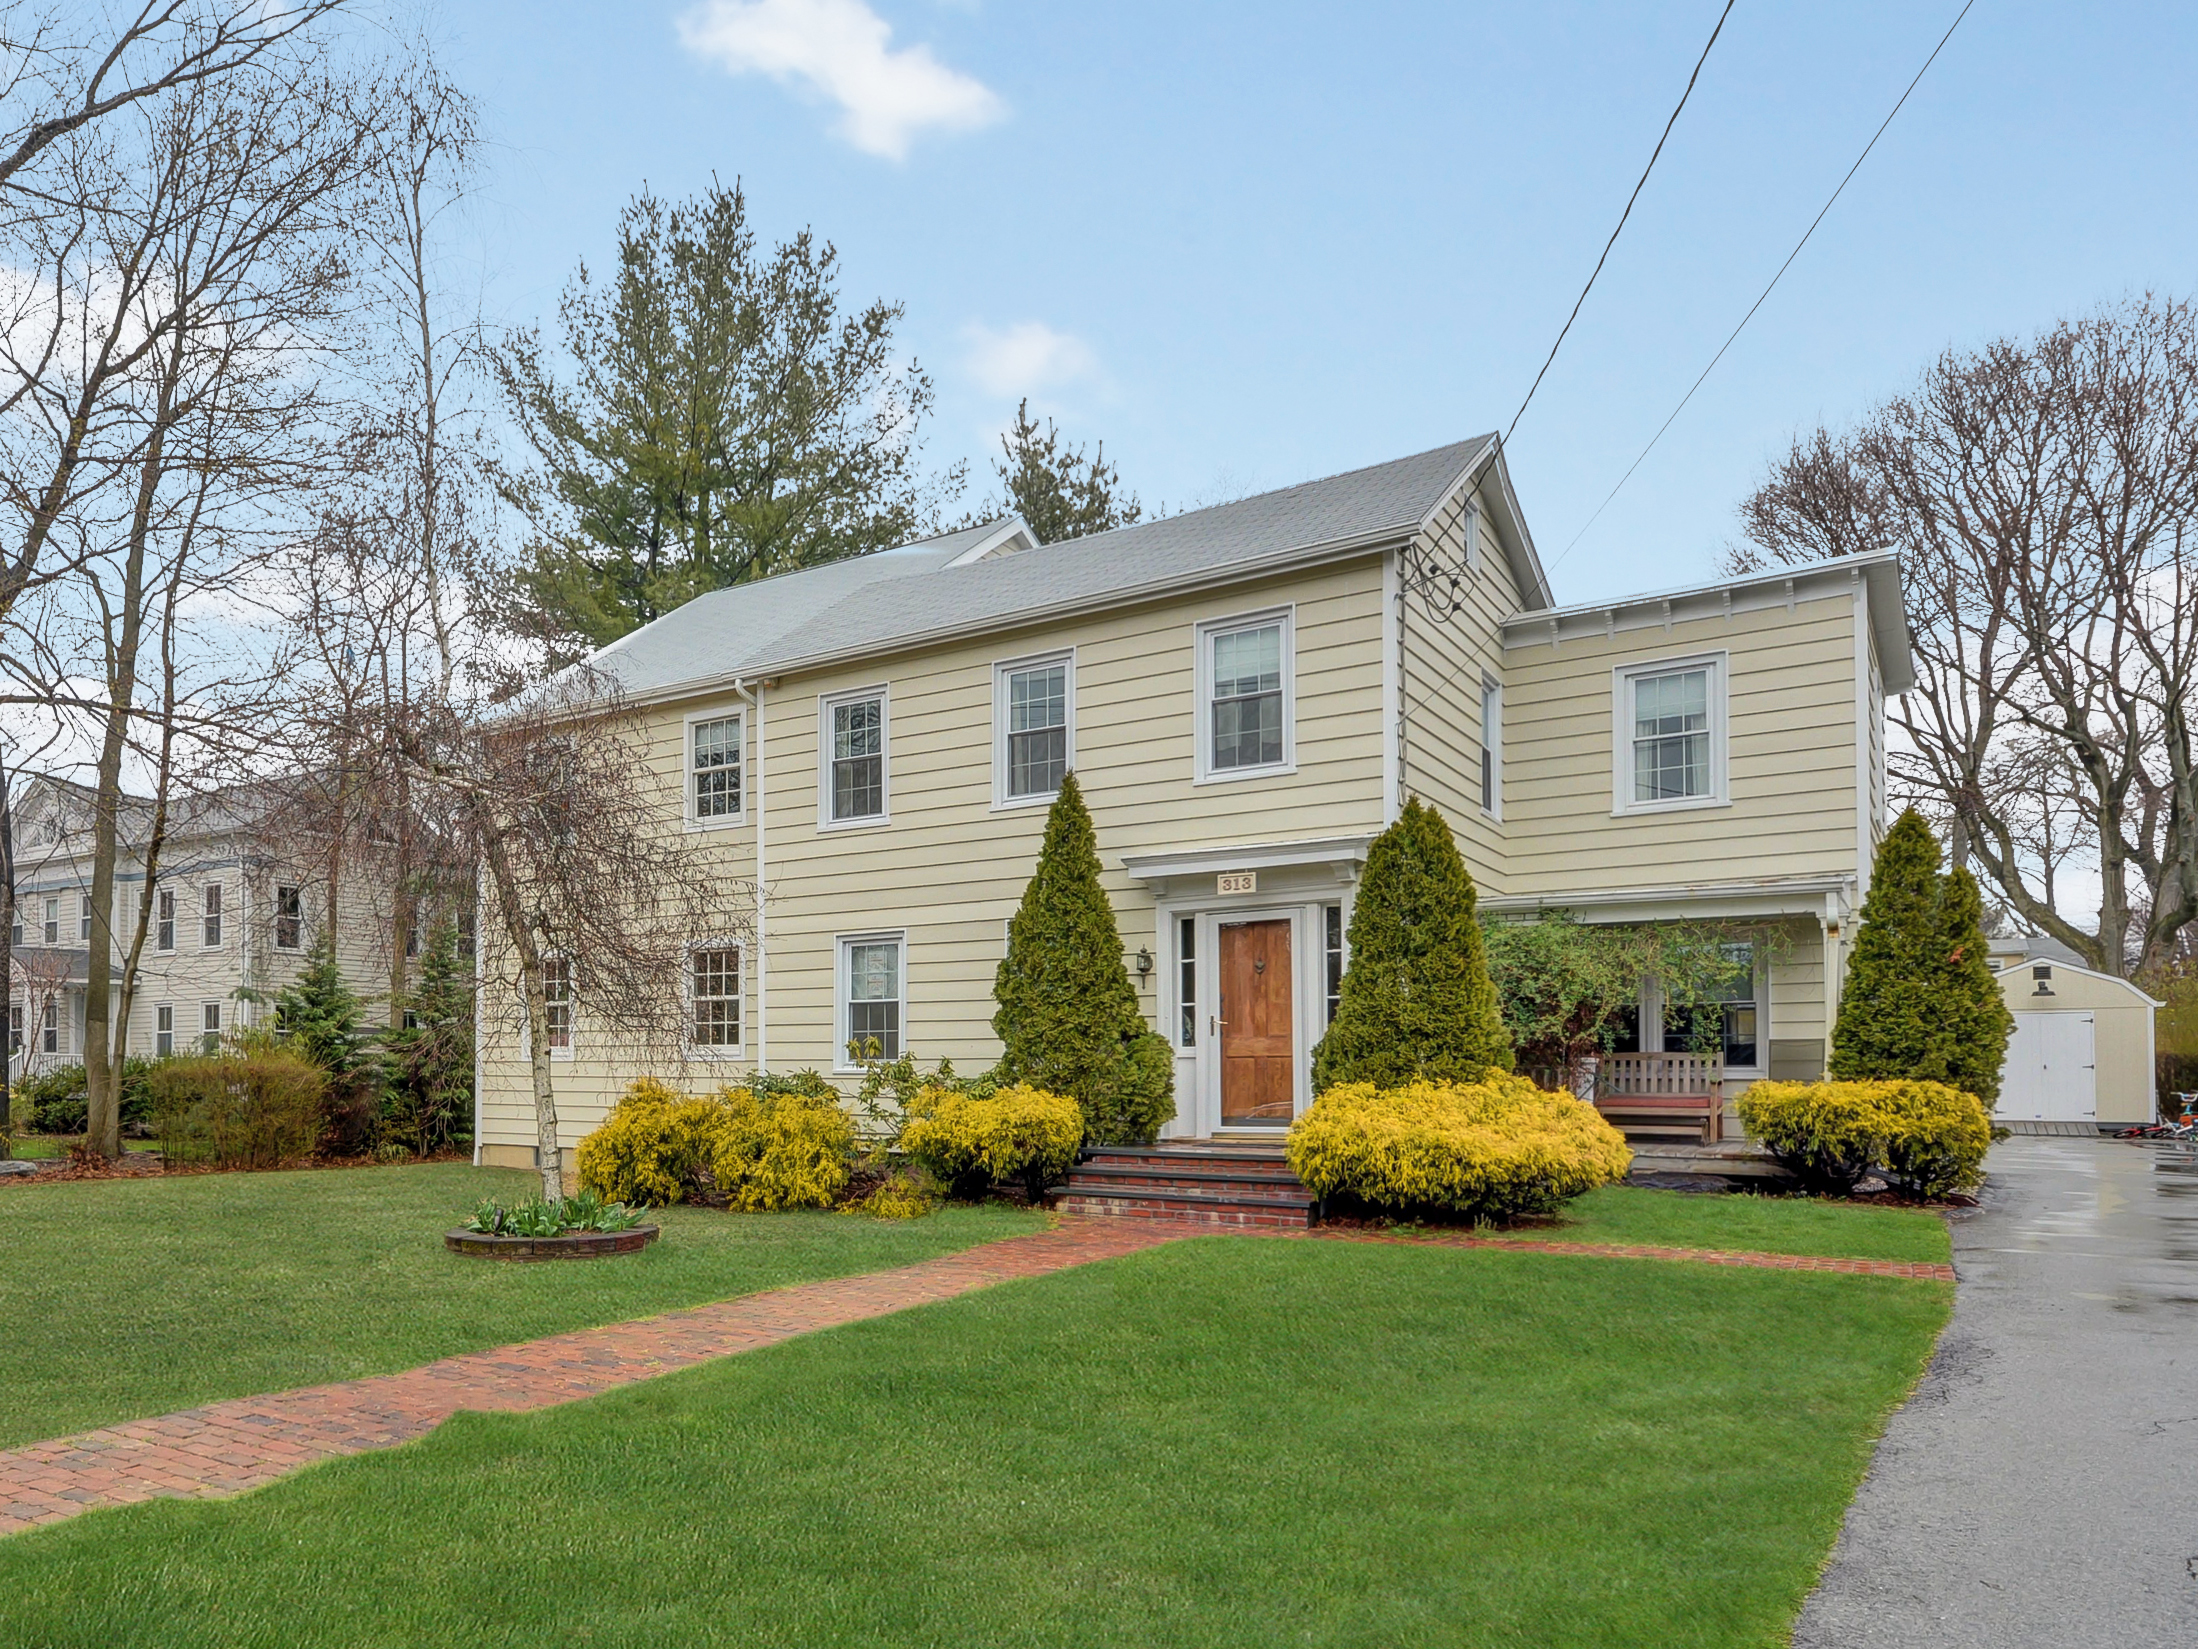 Single Family Home for Sale at Enchanting Setting 313 North Barry Avenue Mamaroneck, New York, 10543 United States